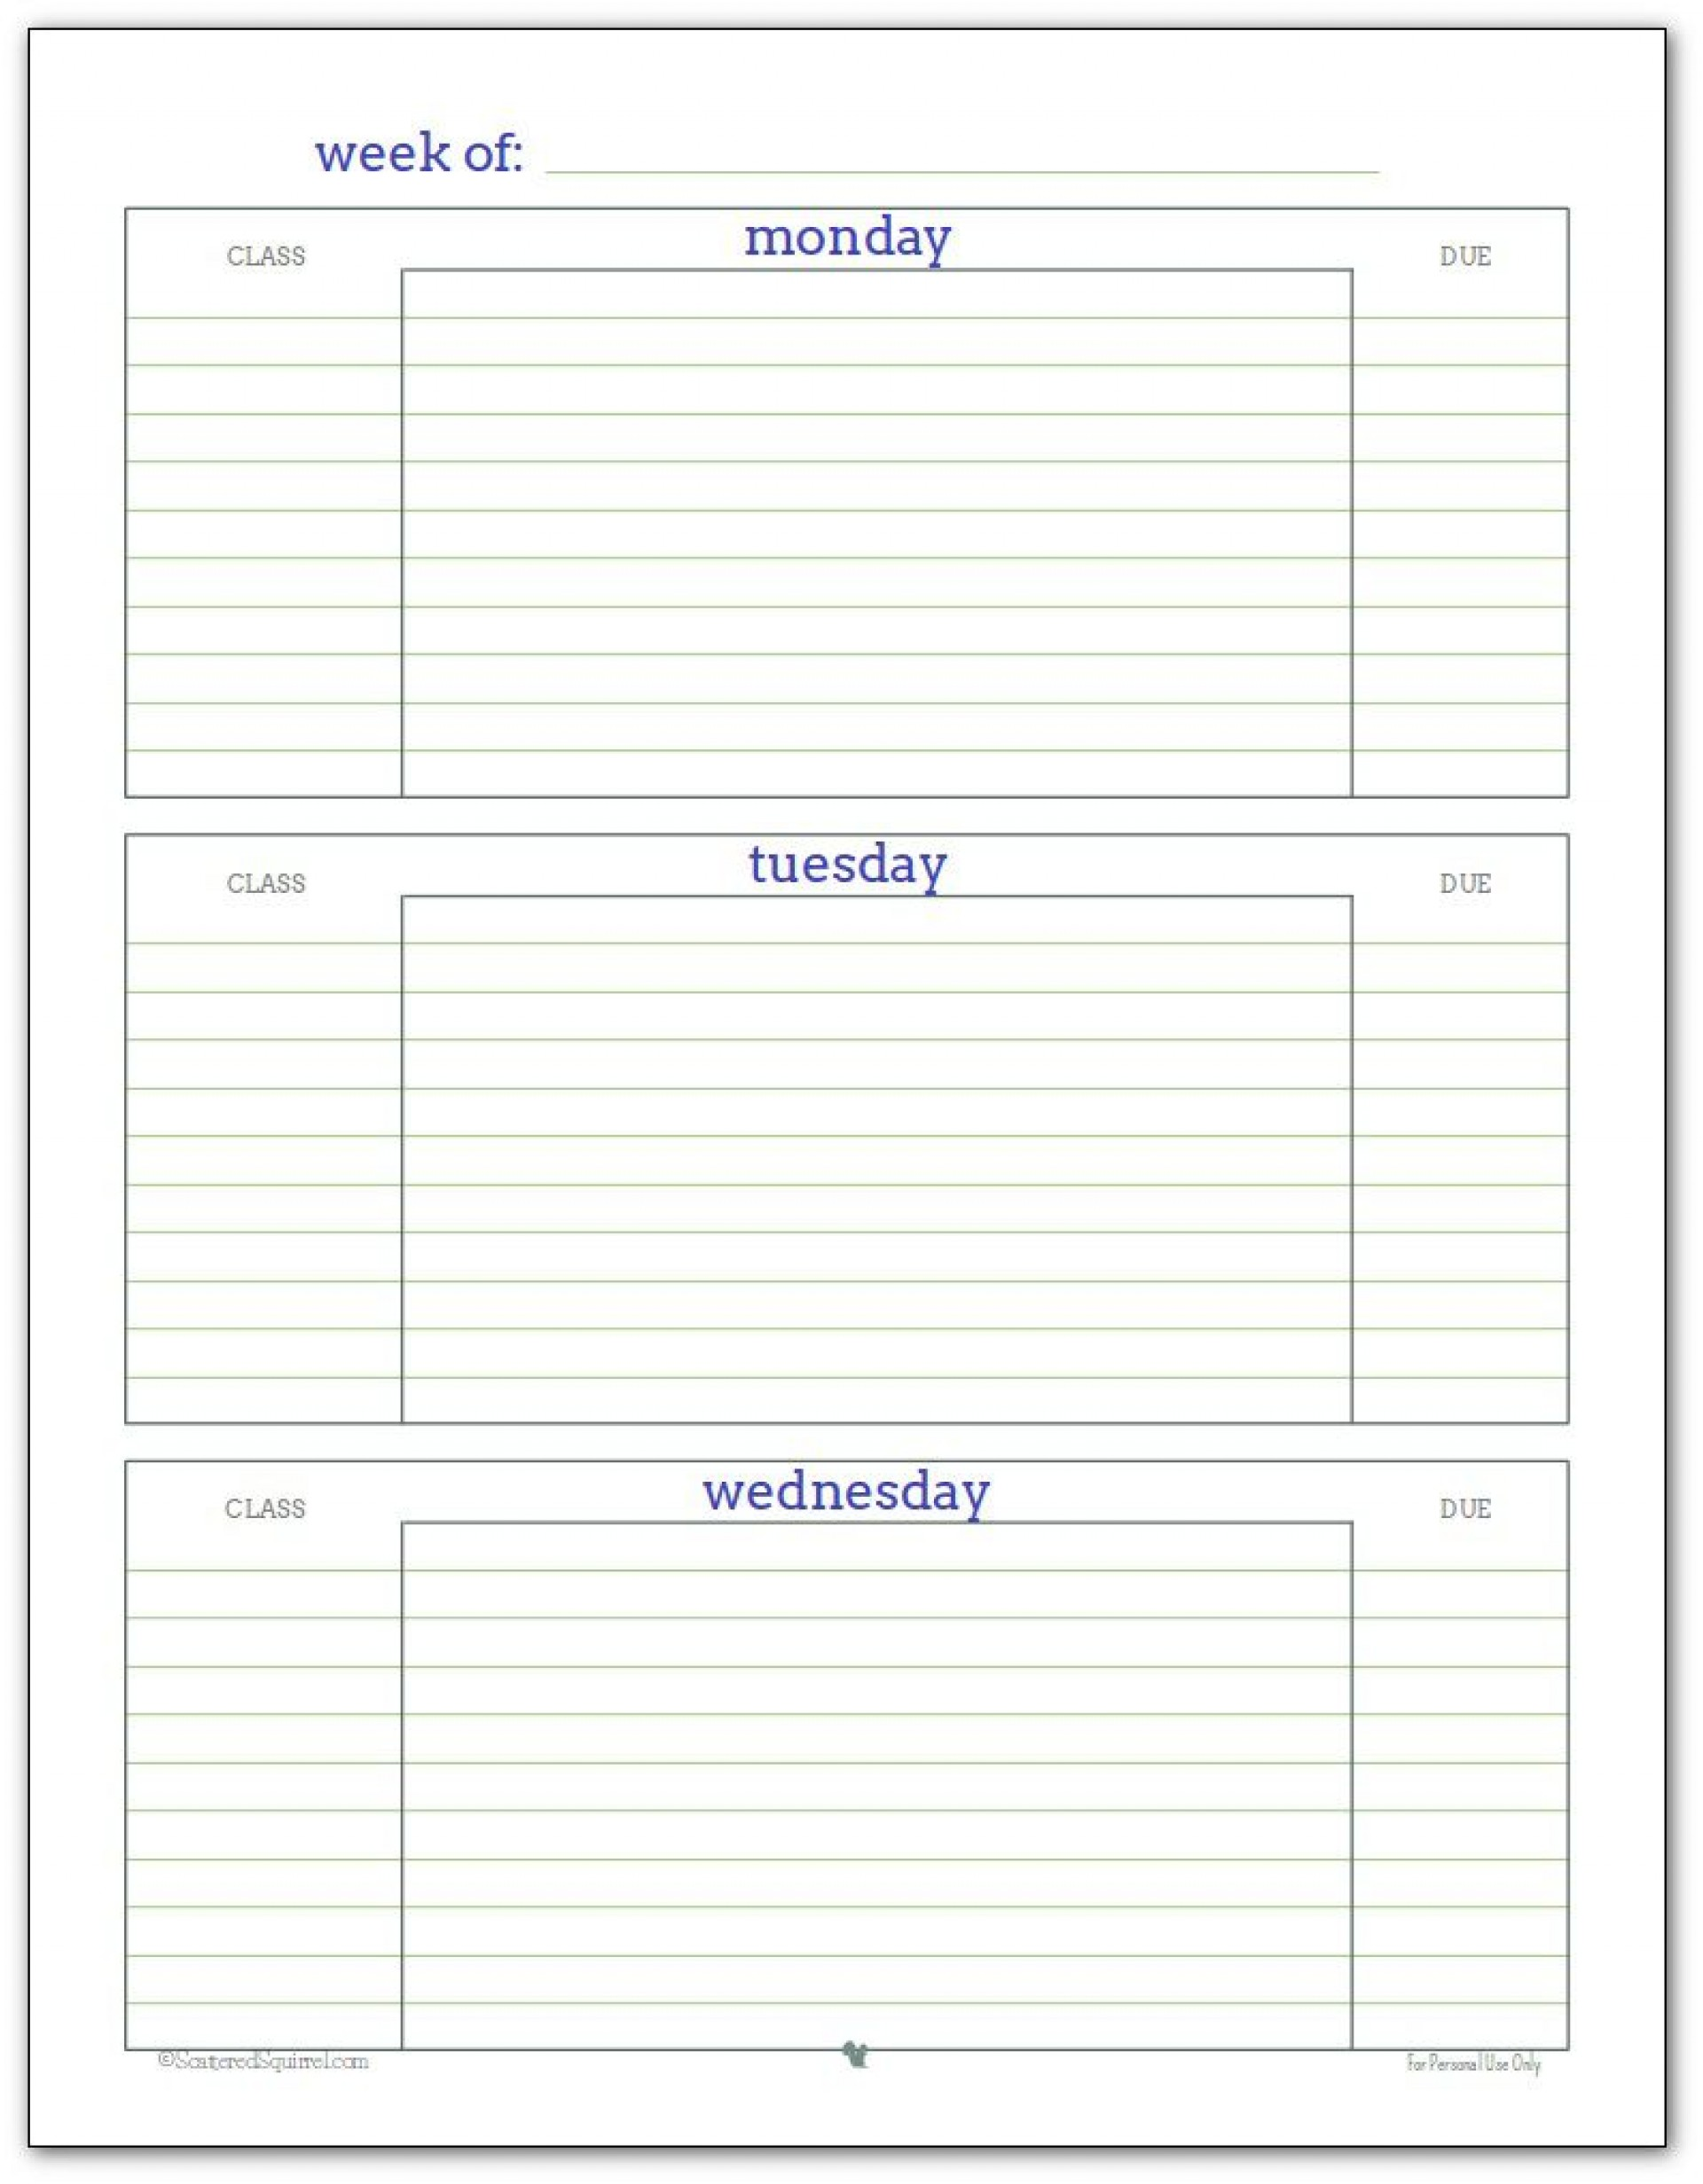 005 Impressive Weekly School Planner Template Example  Lesson Plan Primary Planning Schedule Printable1920